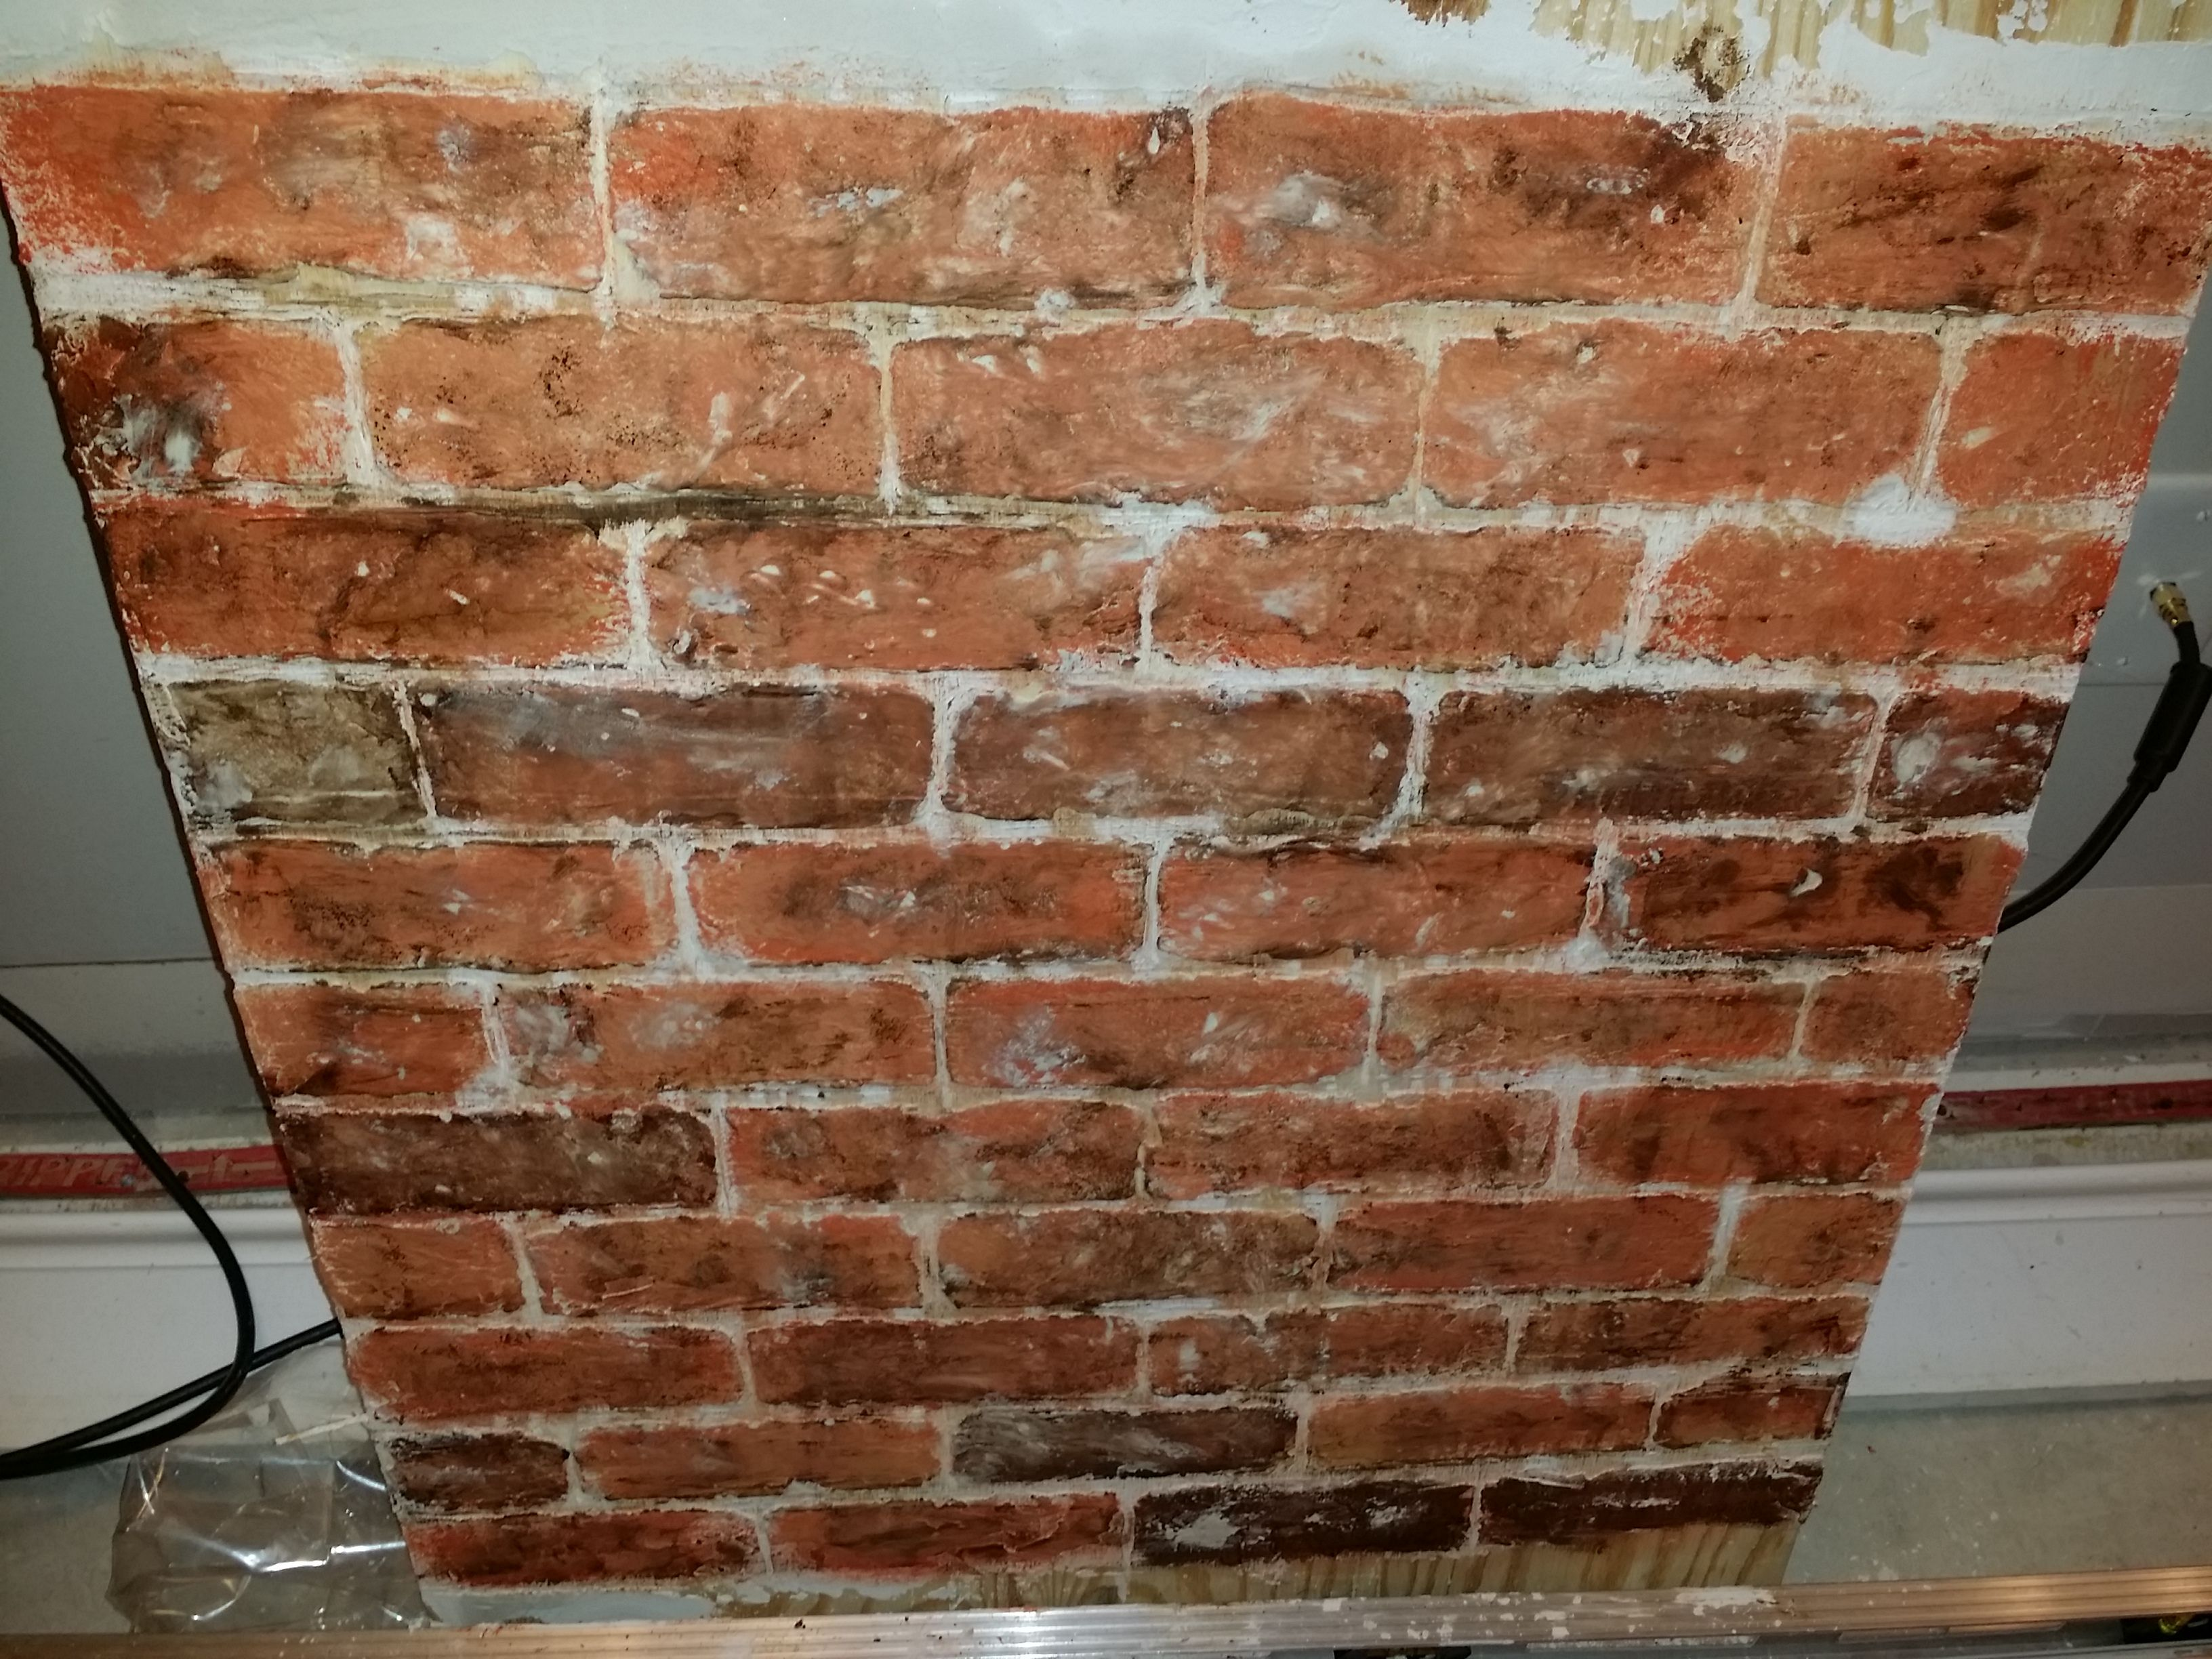 Made This Faux Fake Brick Wall With Joint Compound My Long Silver Level And The End Of A Paintbrush I Let It D Faux Brick Walls Fake Brick Wall Faux Brick